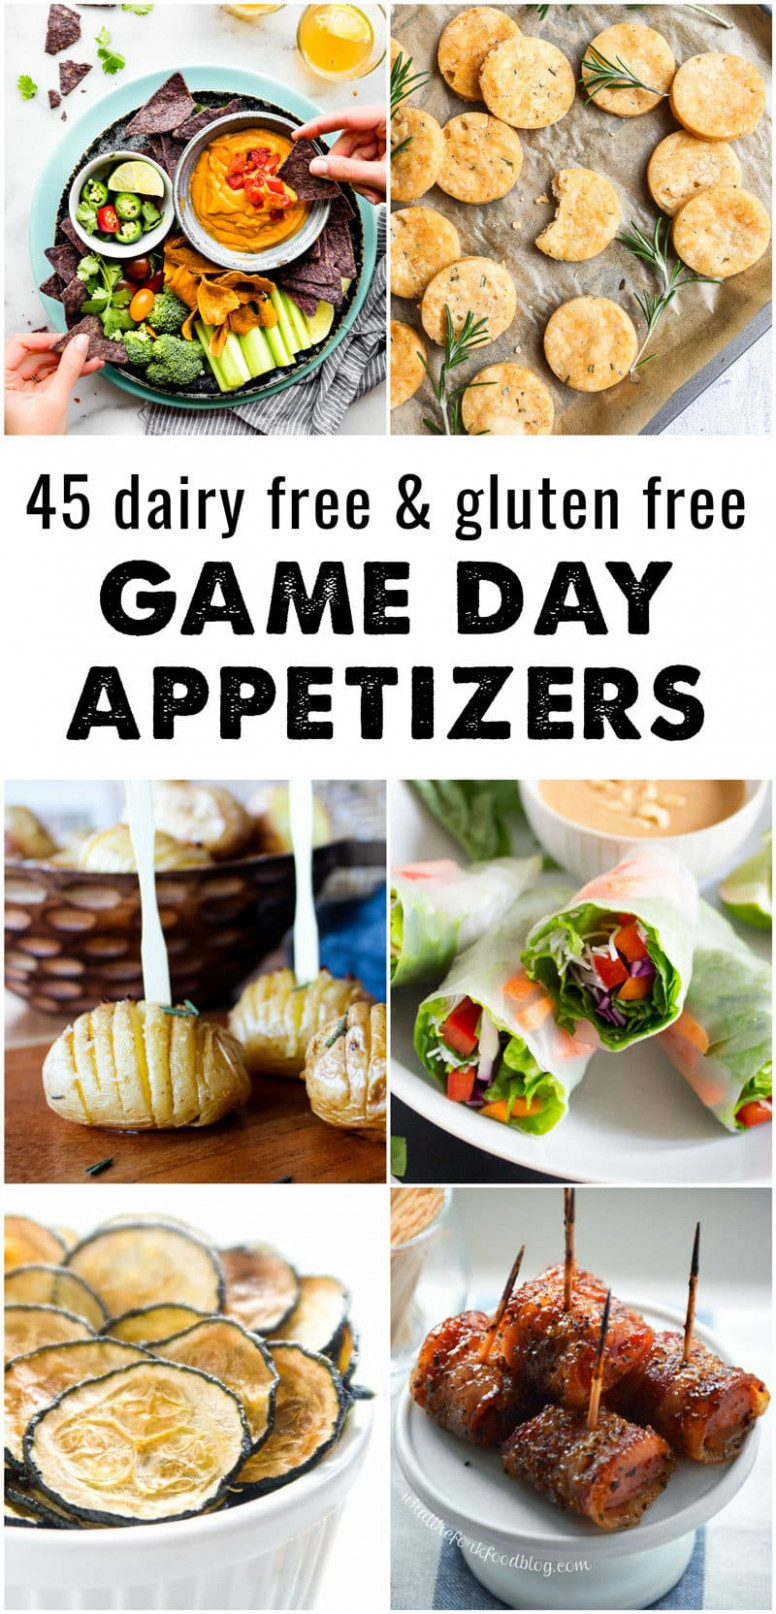 14 Dairy Free and Gluten Free Appetizers • The Fit Cookie - gluten free dairy free recipes dinner